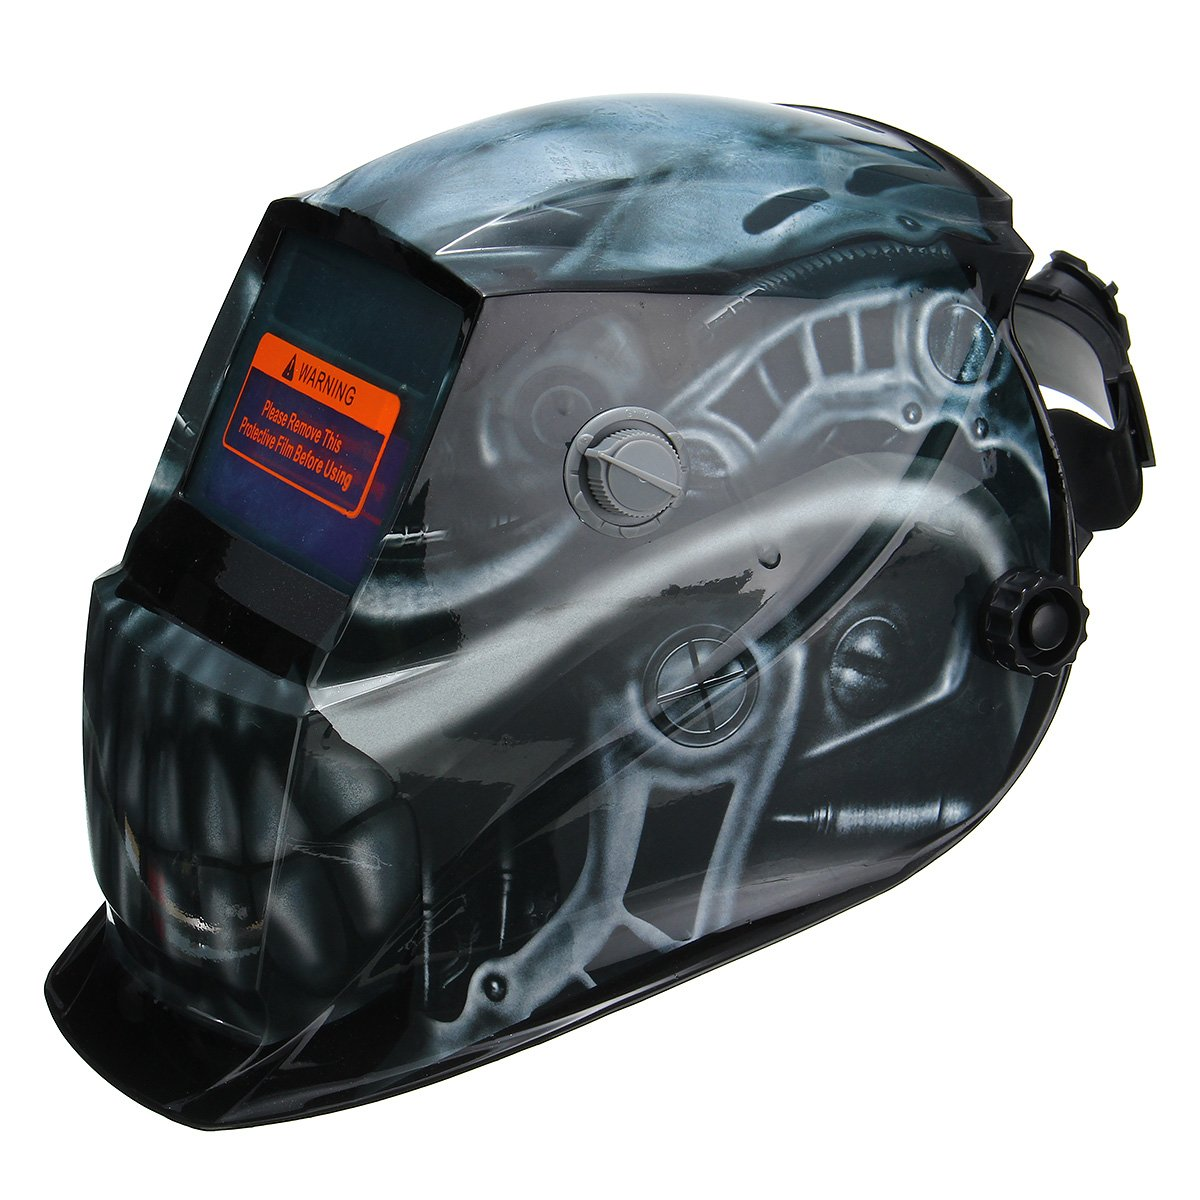 Solar Auto Darkening Welder Welding Helmet Head Shield Grinding Mask - - Amazon.com